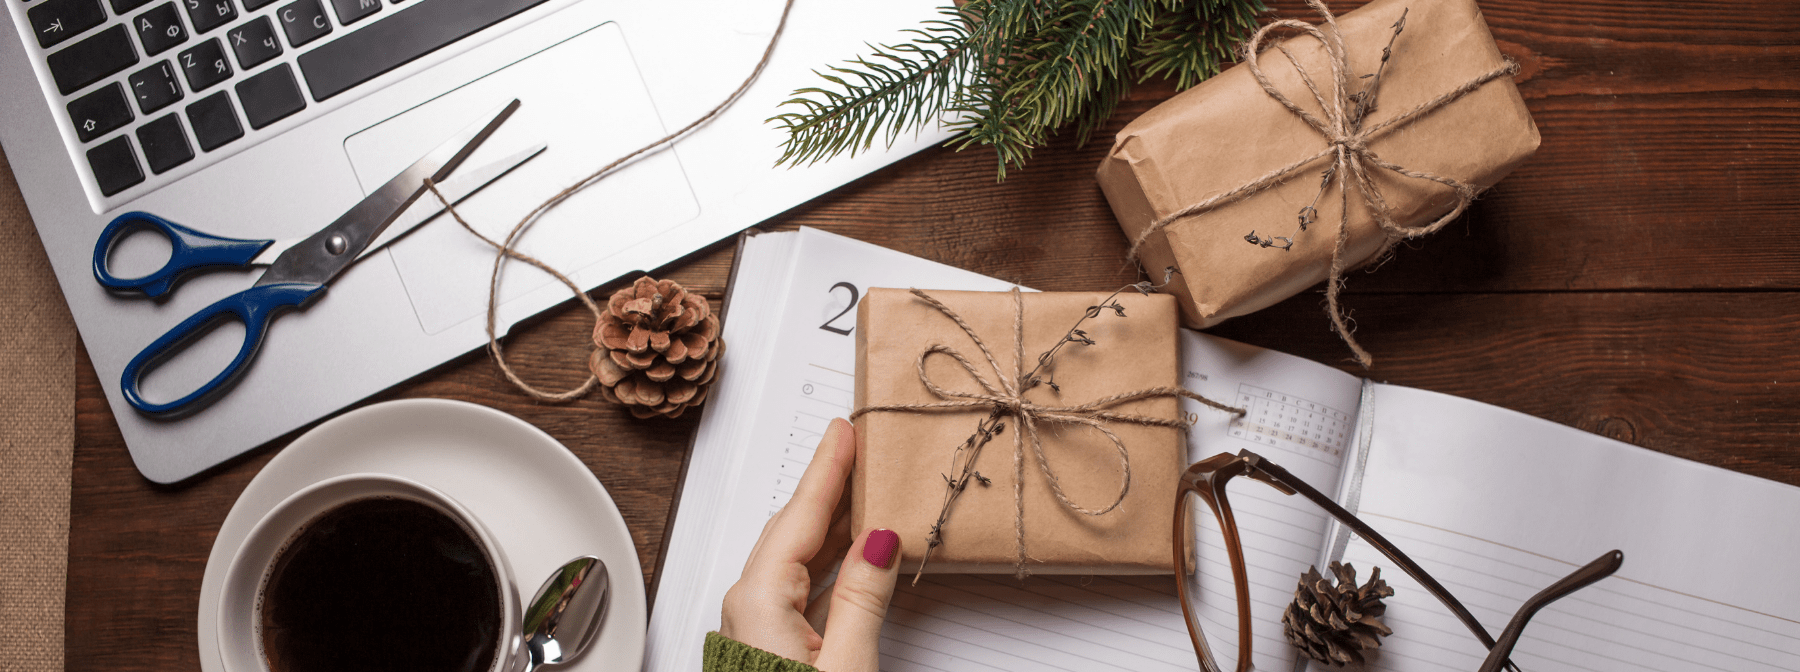 Top 15 Healthy Gift Ideas That Promote a Healthy Lifestyle